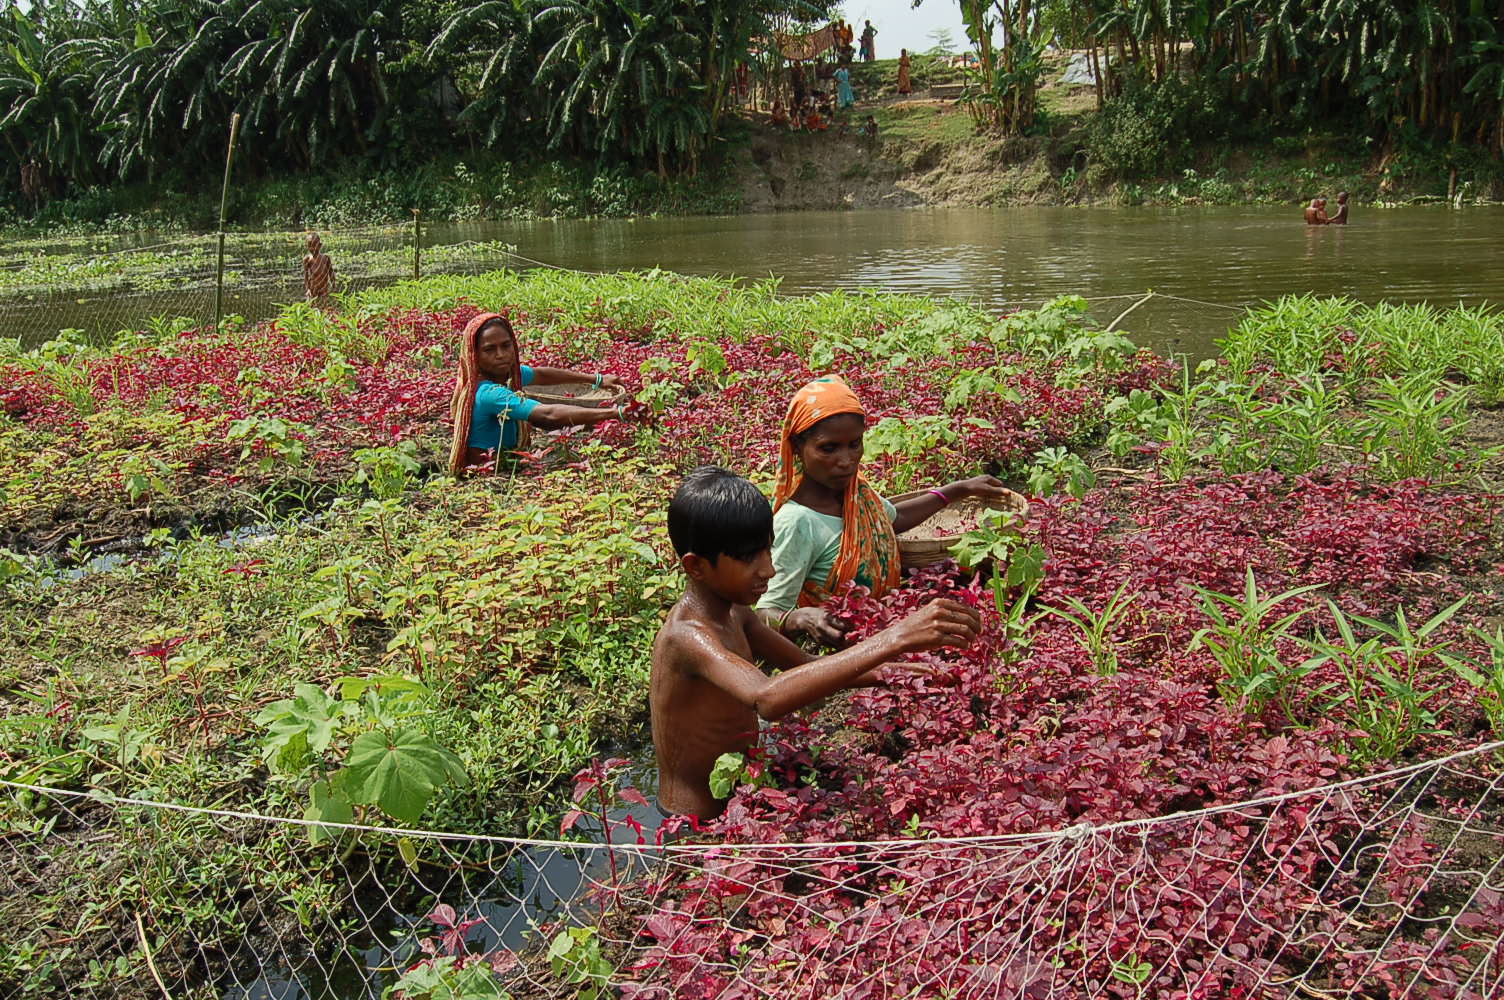 Practical Action showed communities in Bangladesh how to grow crops on a raft made of hyacinth roots.  Now, when the land floods, the crops will not be ruined. Practical Action Bangladesh